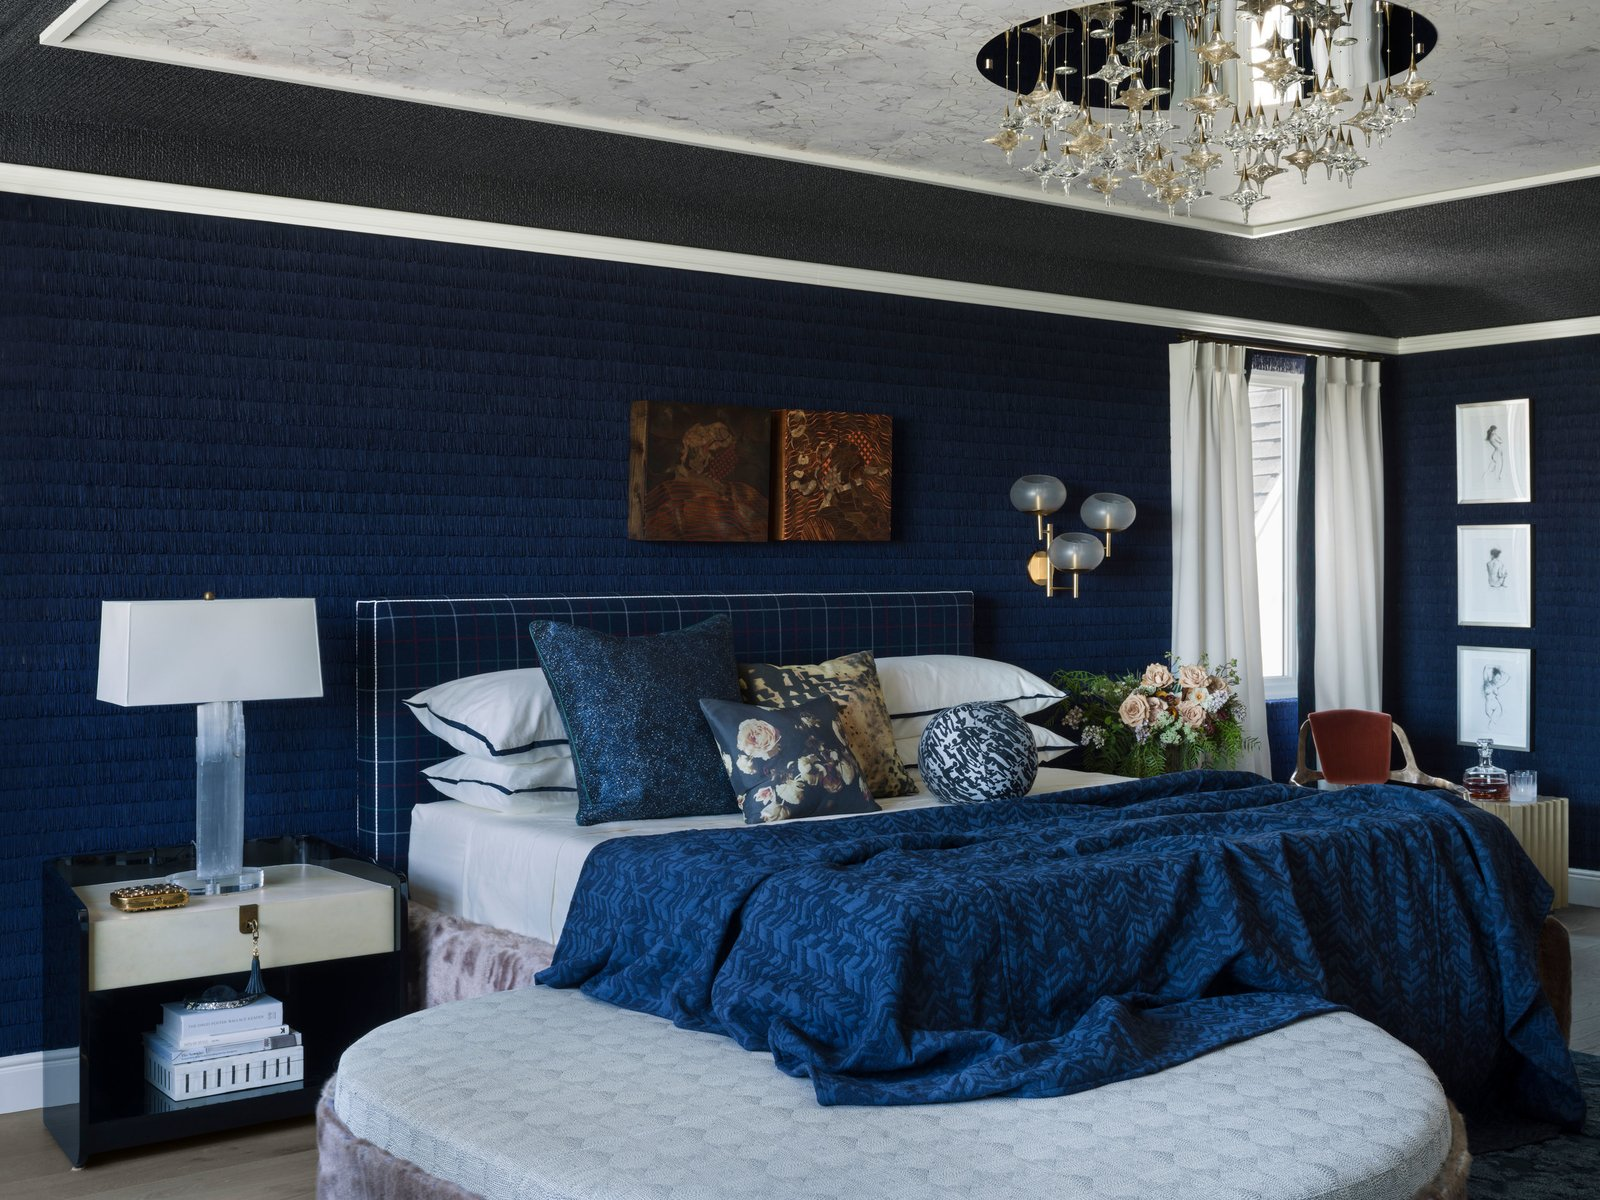 Bedroom with large center ceiling pendant chandelier light with mirror base and star shaped bulbs